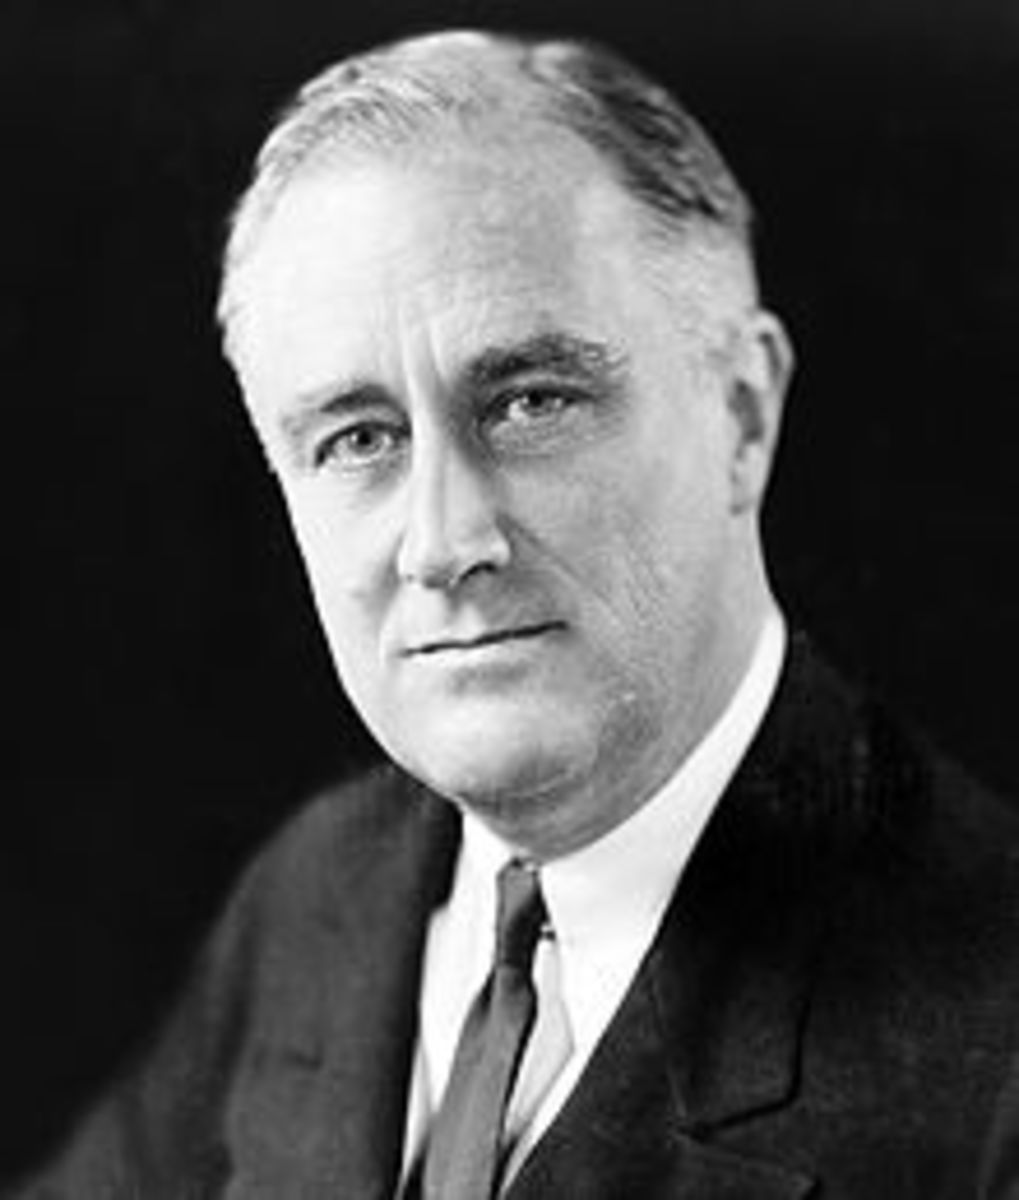 PRESIDENT FRANKLIN D. ROOSEVELT March 4, 1933 – April 12, 1945 FISCAL CONSERVATIVE, SOCIAL LIBERAL